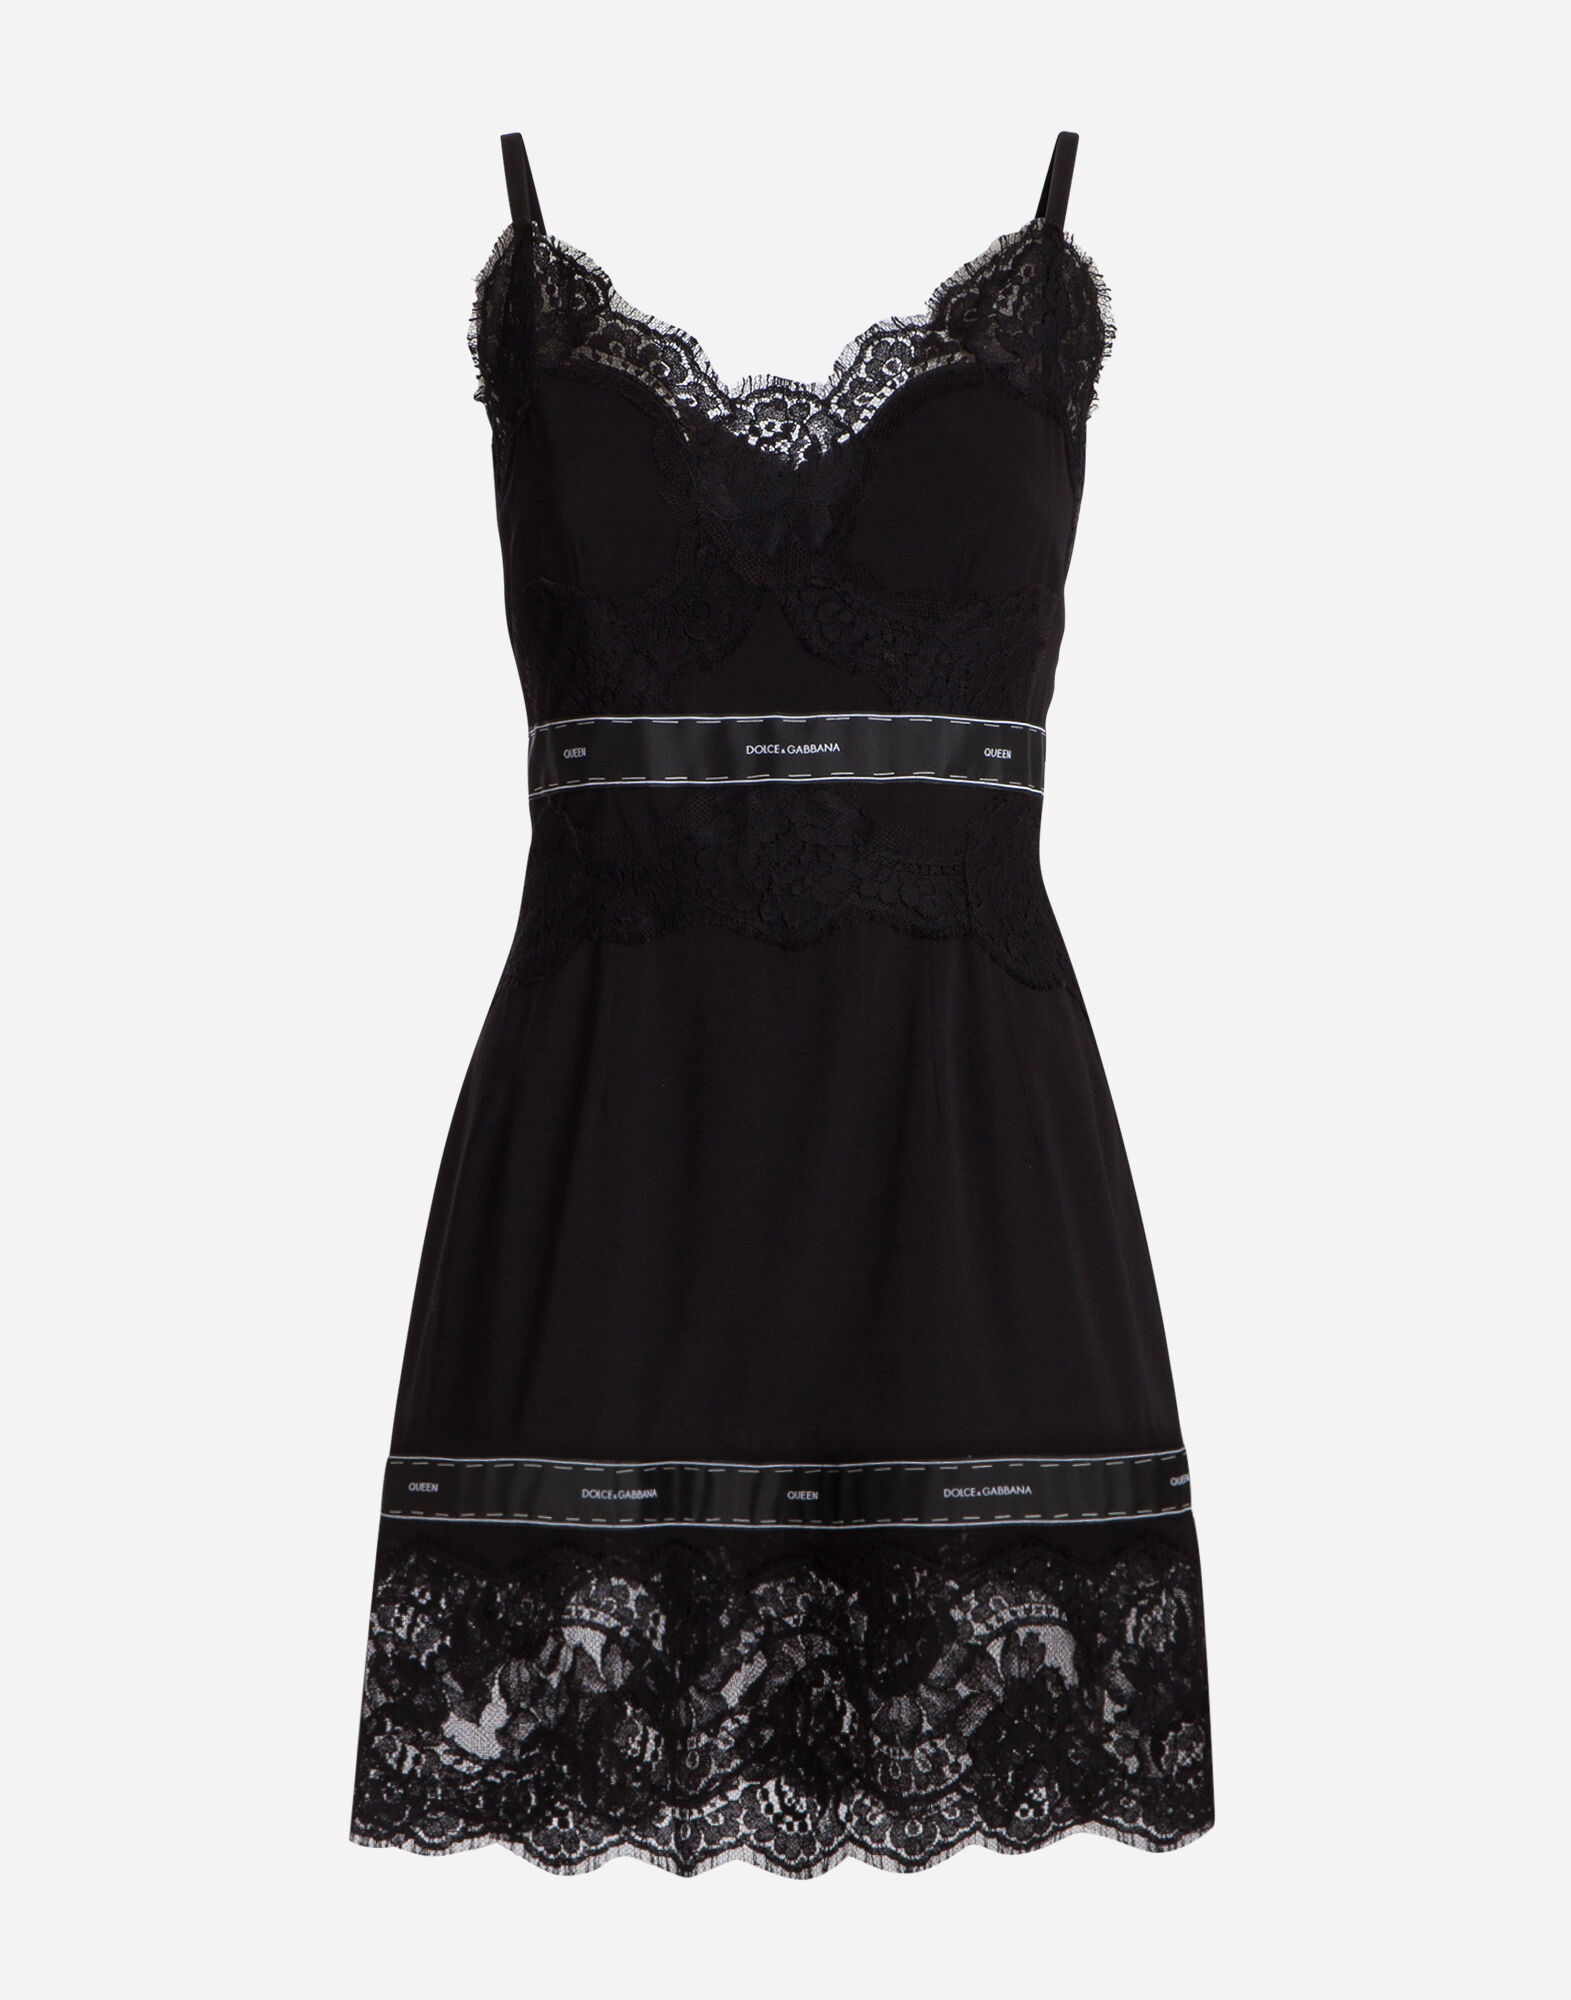 PRINTED SILK DRESS WITH LACE DETAILS